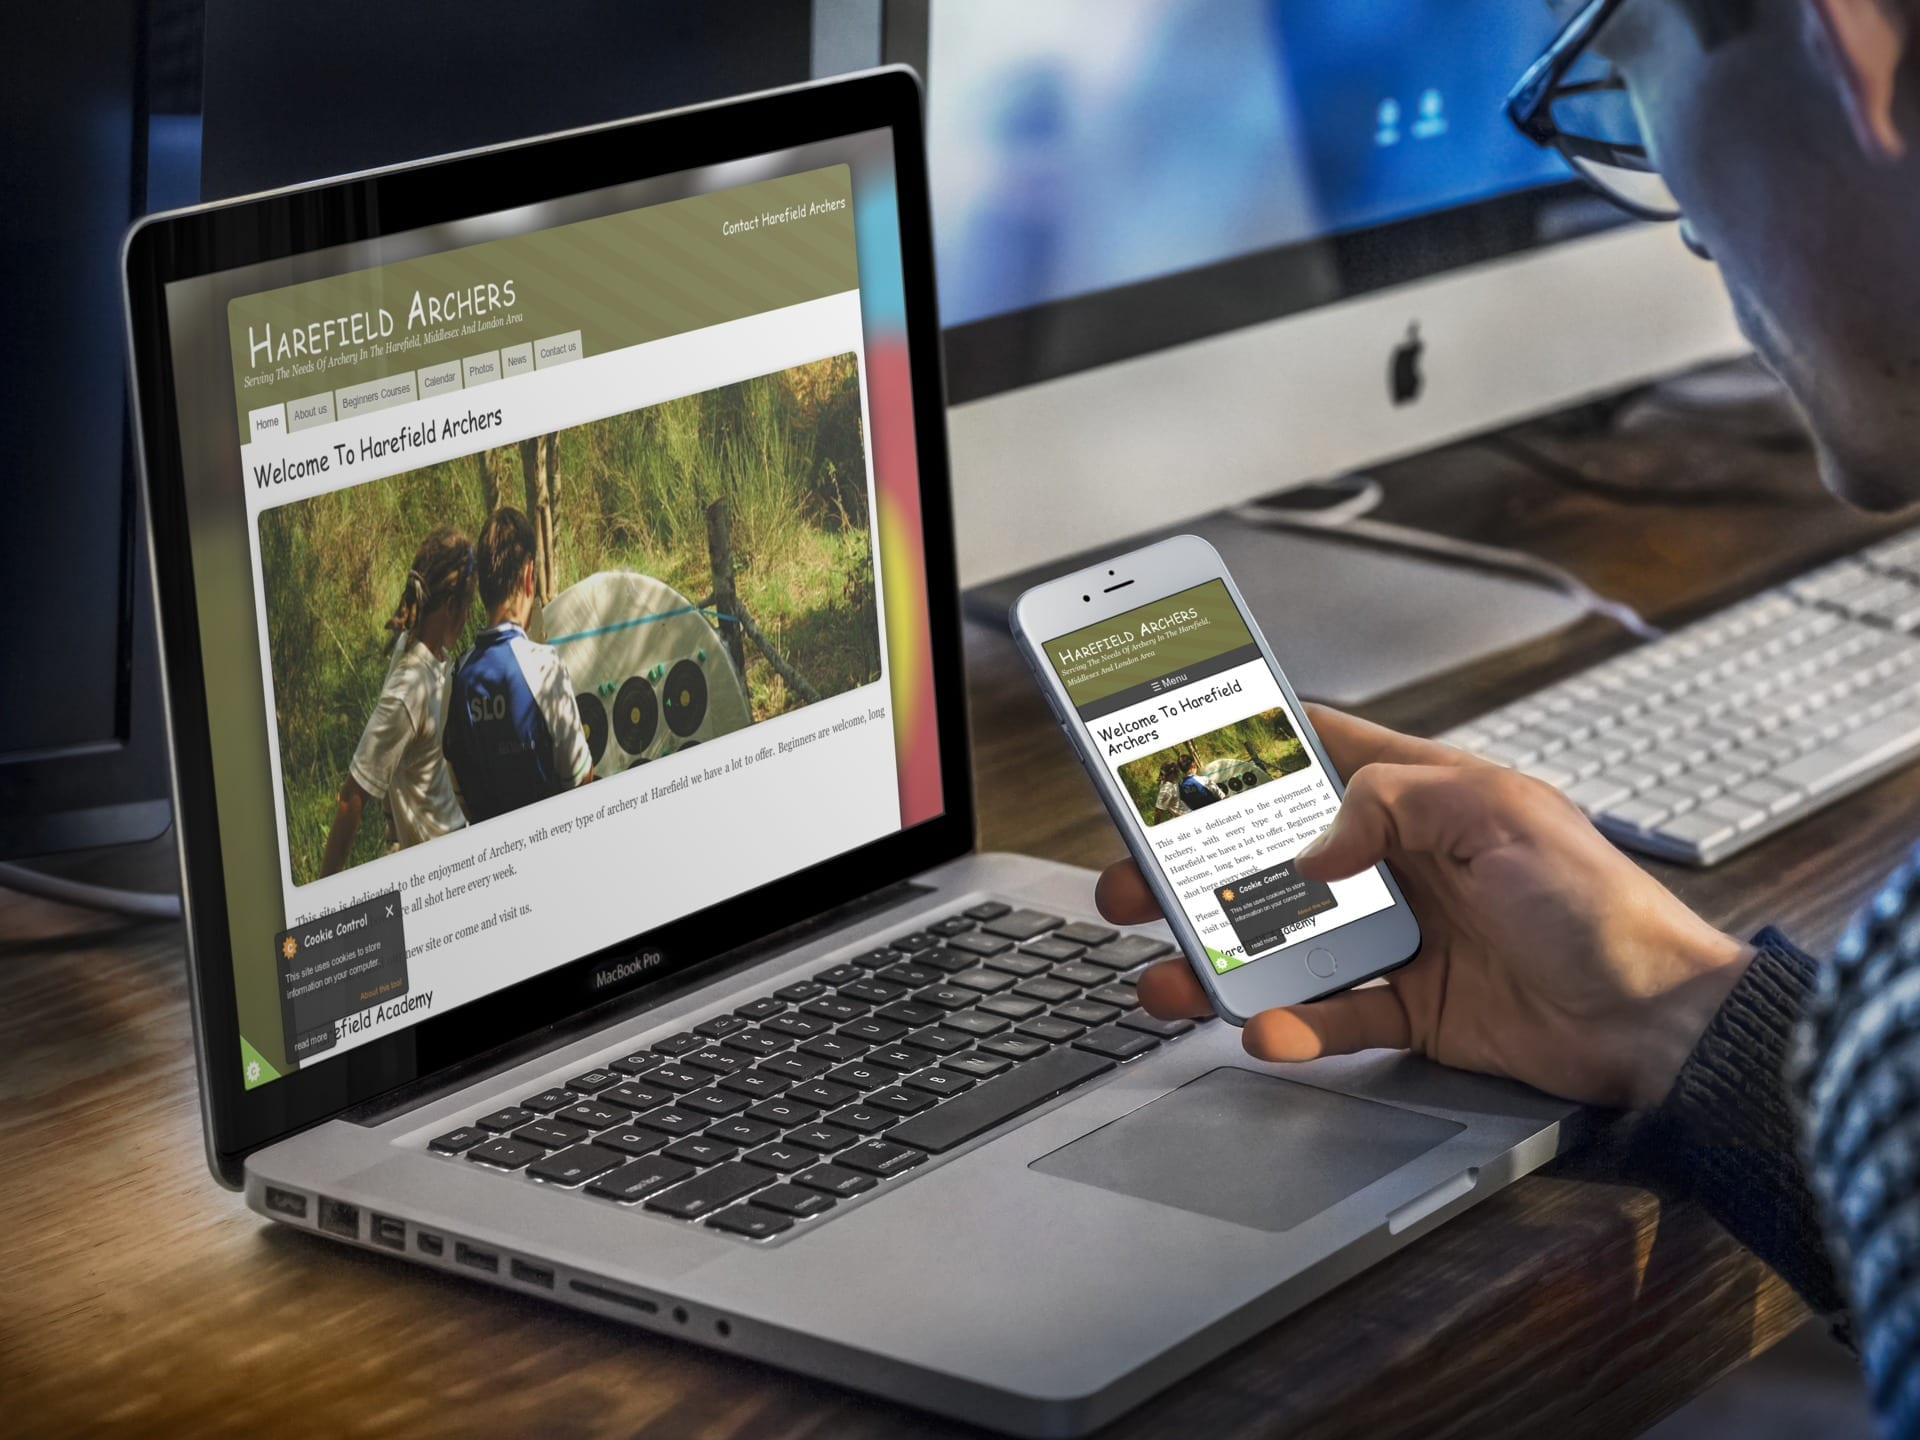 responsive-design-makes-harefield-archers-look-good-on-any-device.jpg